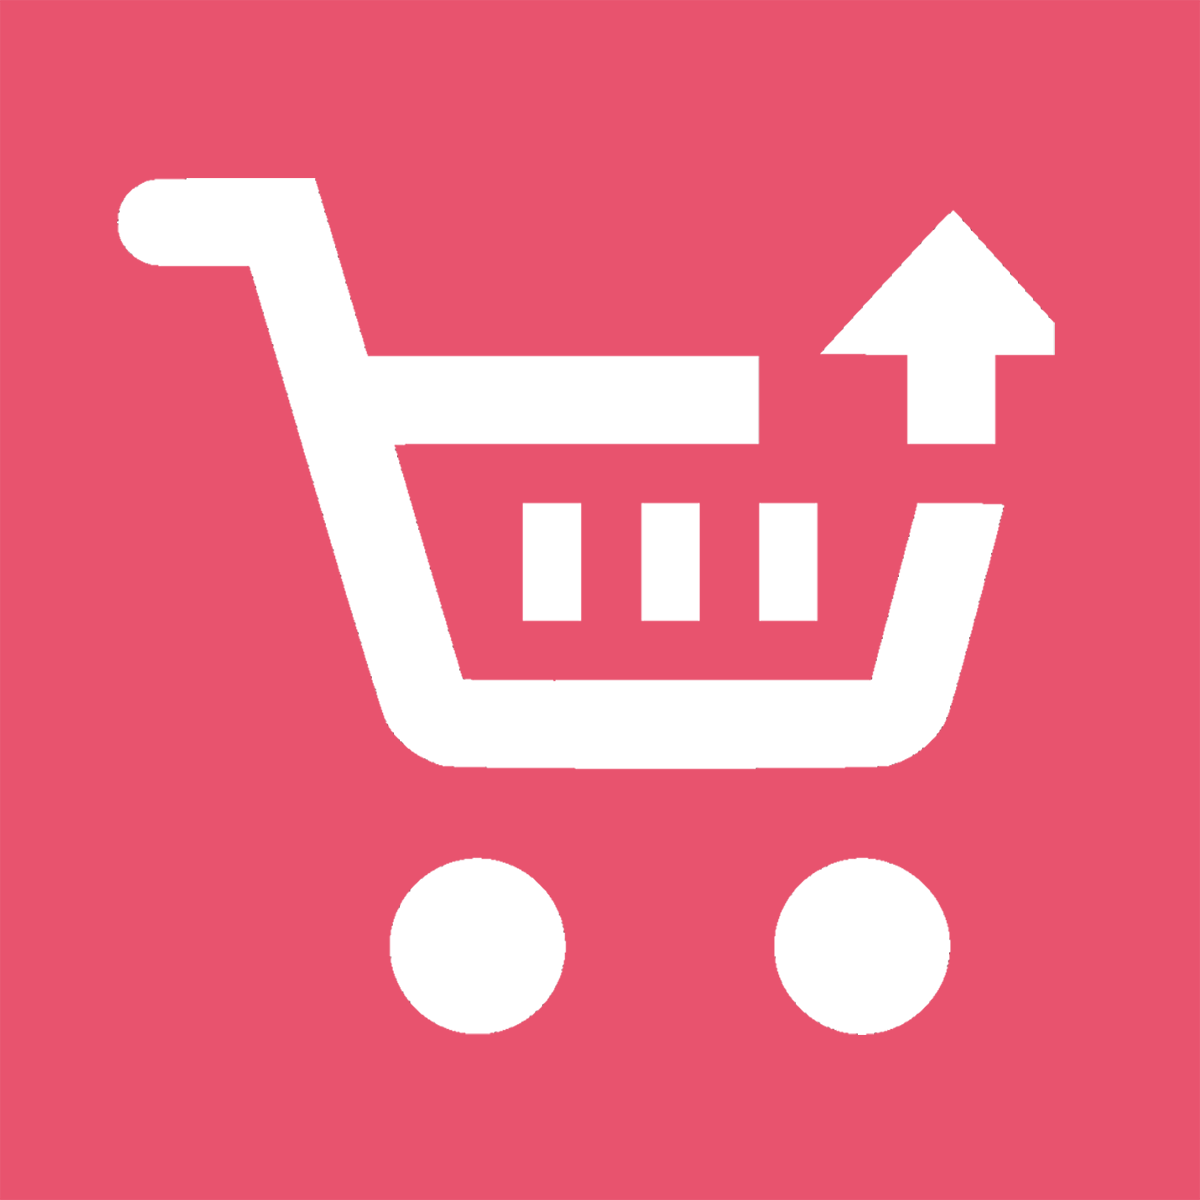 Hire Shopify Experts to integrate Sold Count ‑ Inventory Display app into a Shopify store